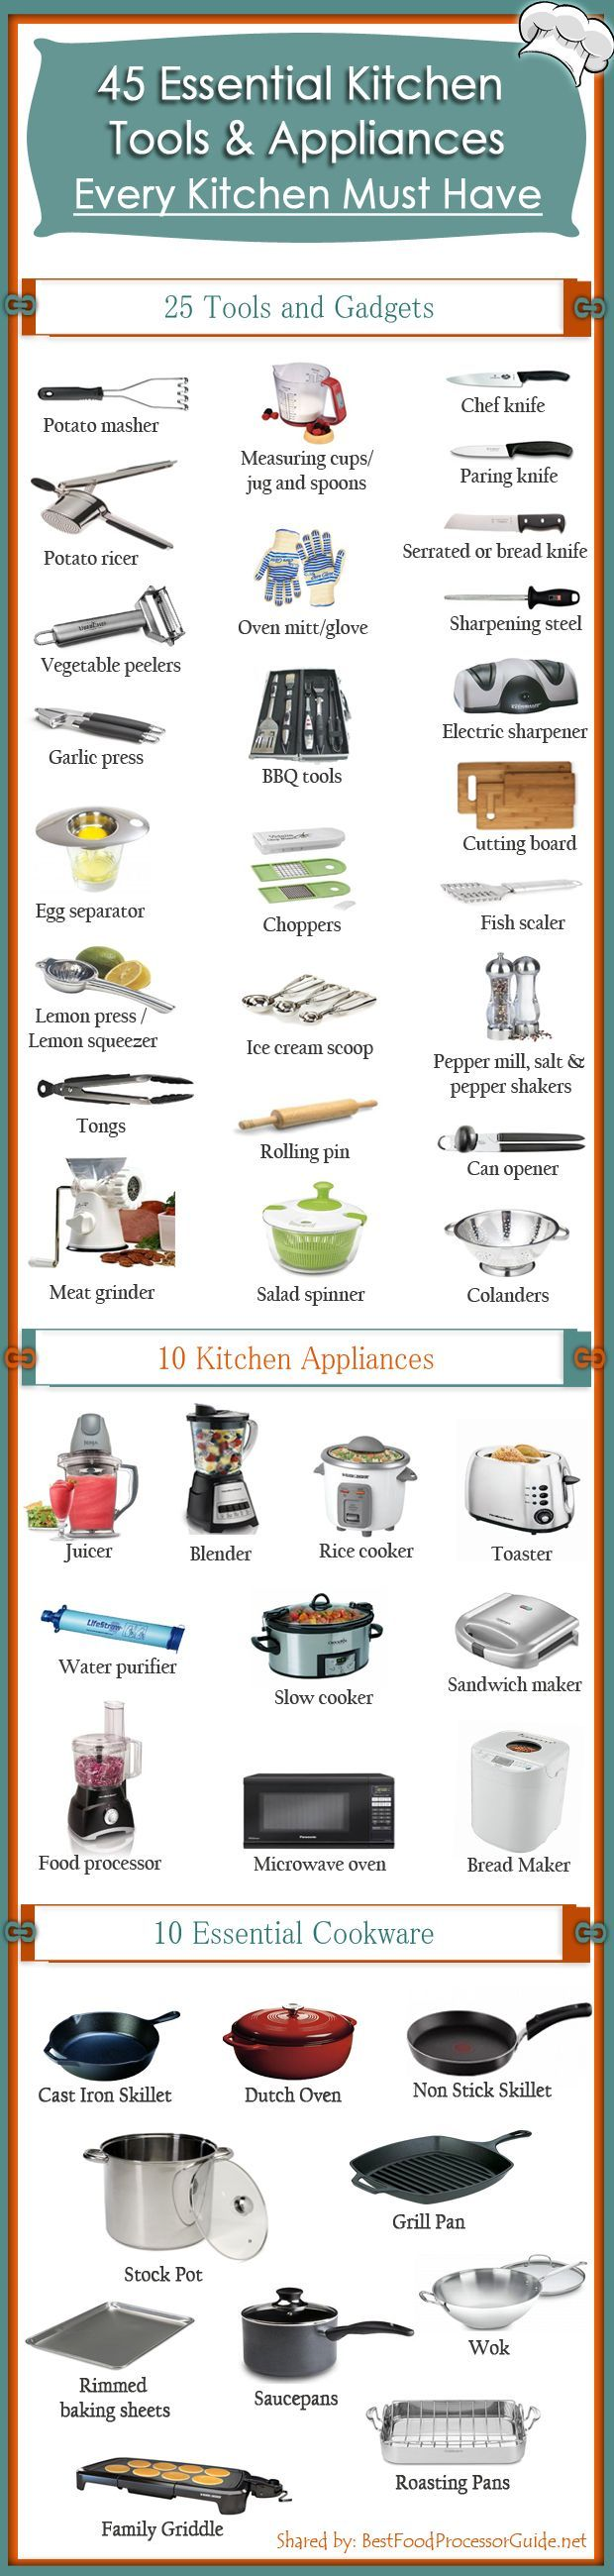 essential kitchen tools and appliances every kitchen must have designed by bdhire: kitchen items store